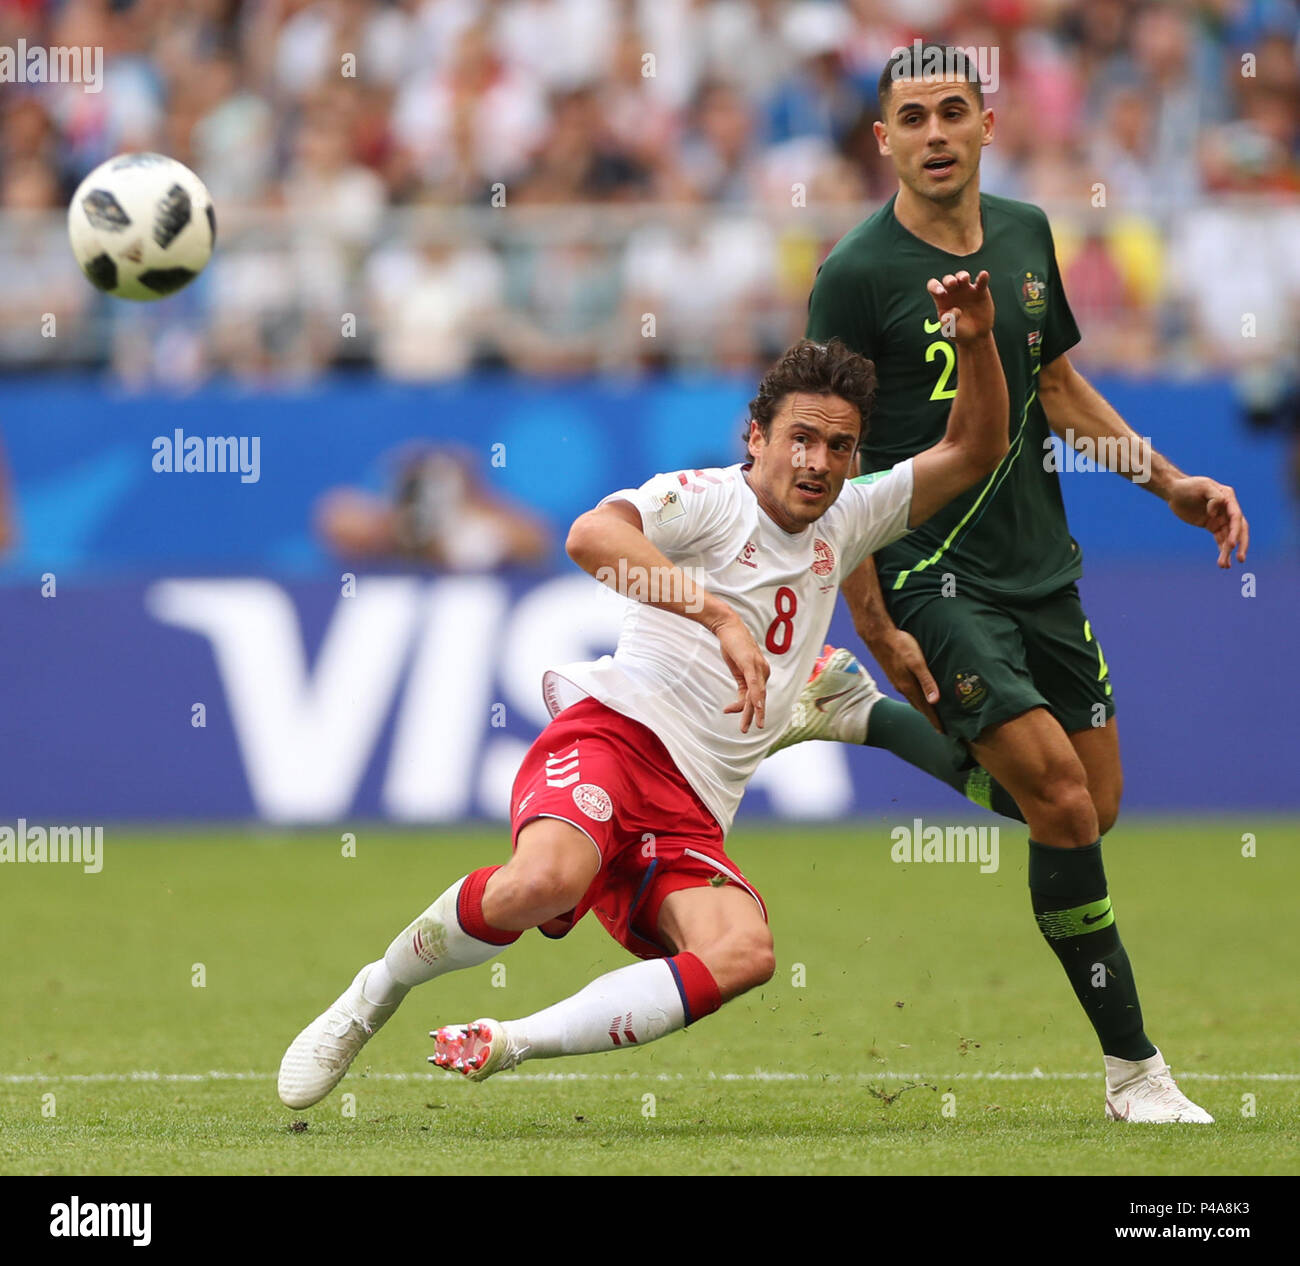 Samara, Russia. 21st June, 2018. Thomas Delaney (bottom) of Denmark vies with Tom Rogic of Australia during the 2018 FIFA World Cup Group C match between Denmark and Australia in Samara, Russia, June 21, 2018. Credit: Fei Maohua/Xinhua/Alamy Live News - Stock Image